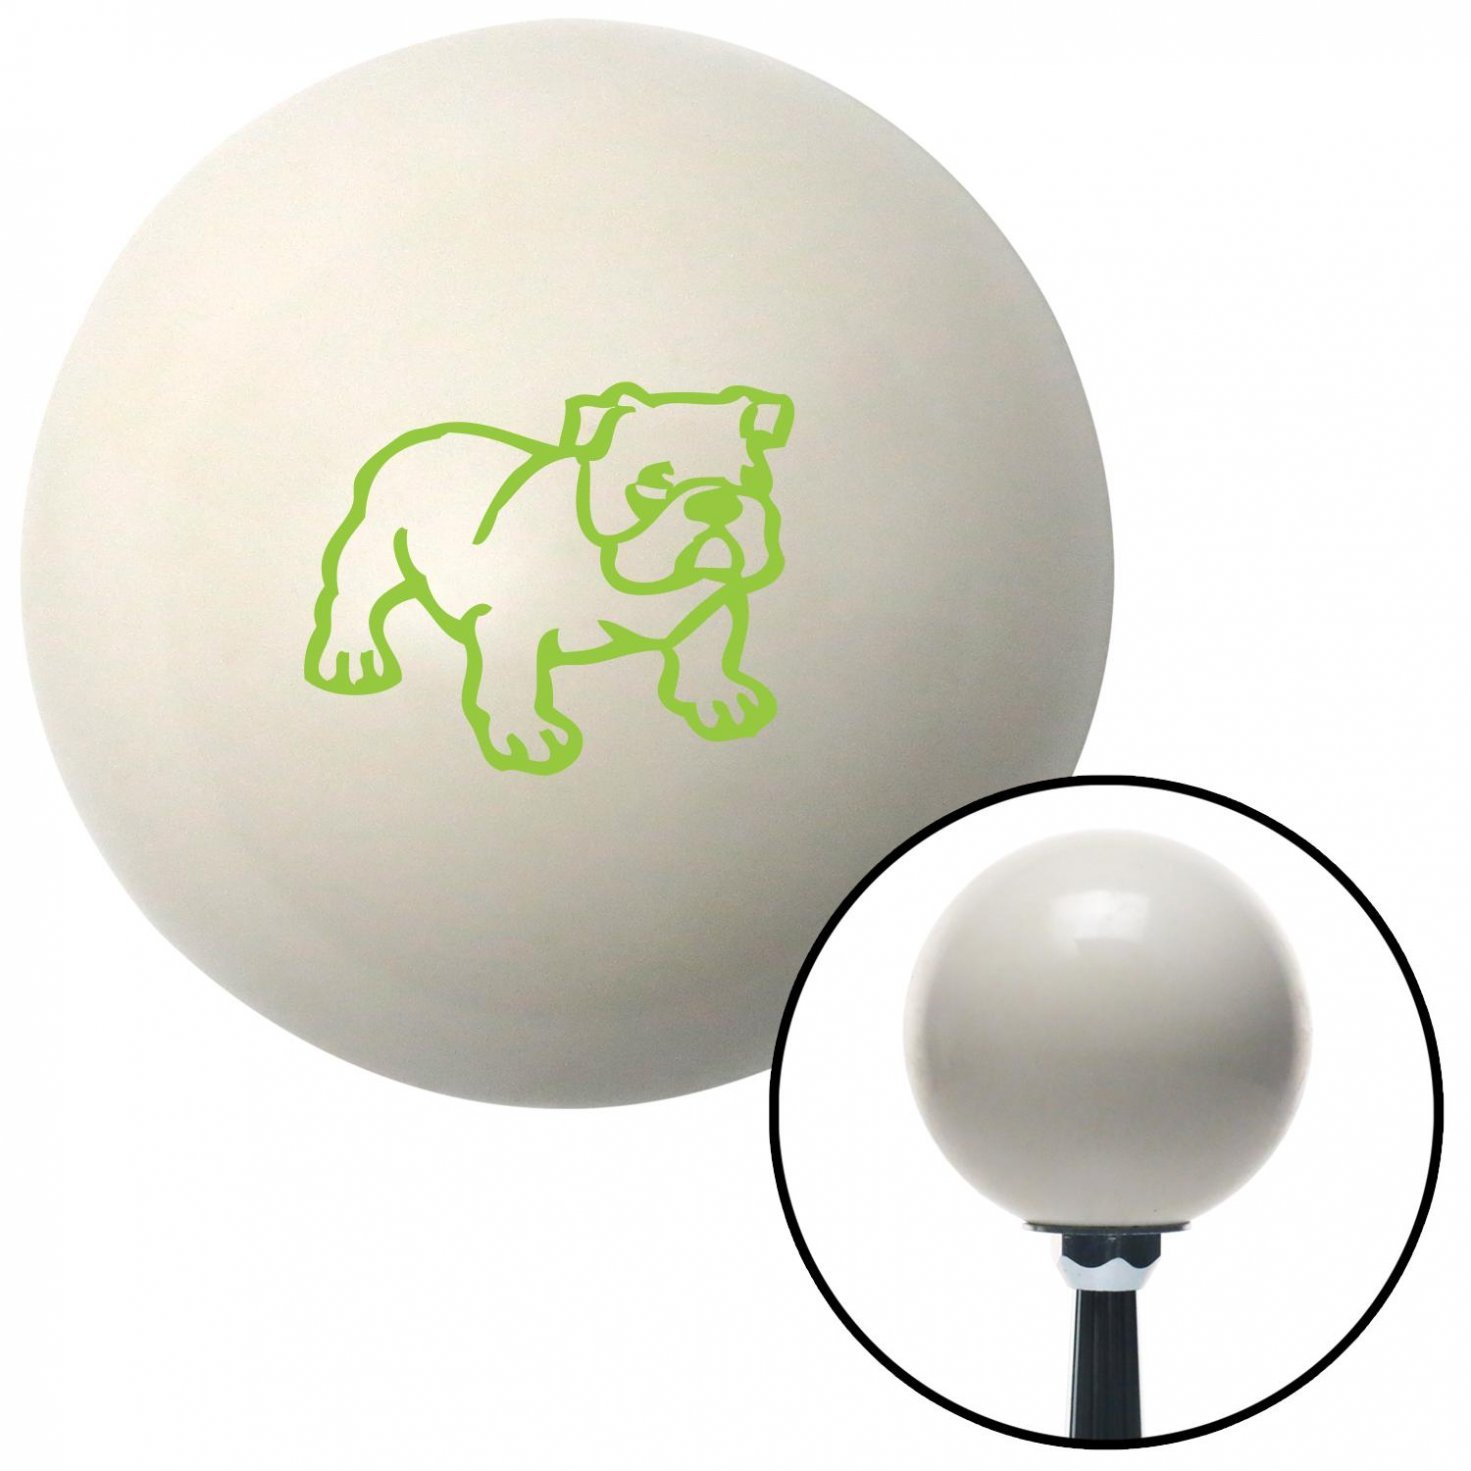 Green English Bulldog American Shifter 41148 Ivory Shift Knob with 16mm x 1.5 Insert